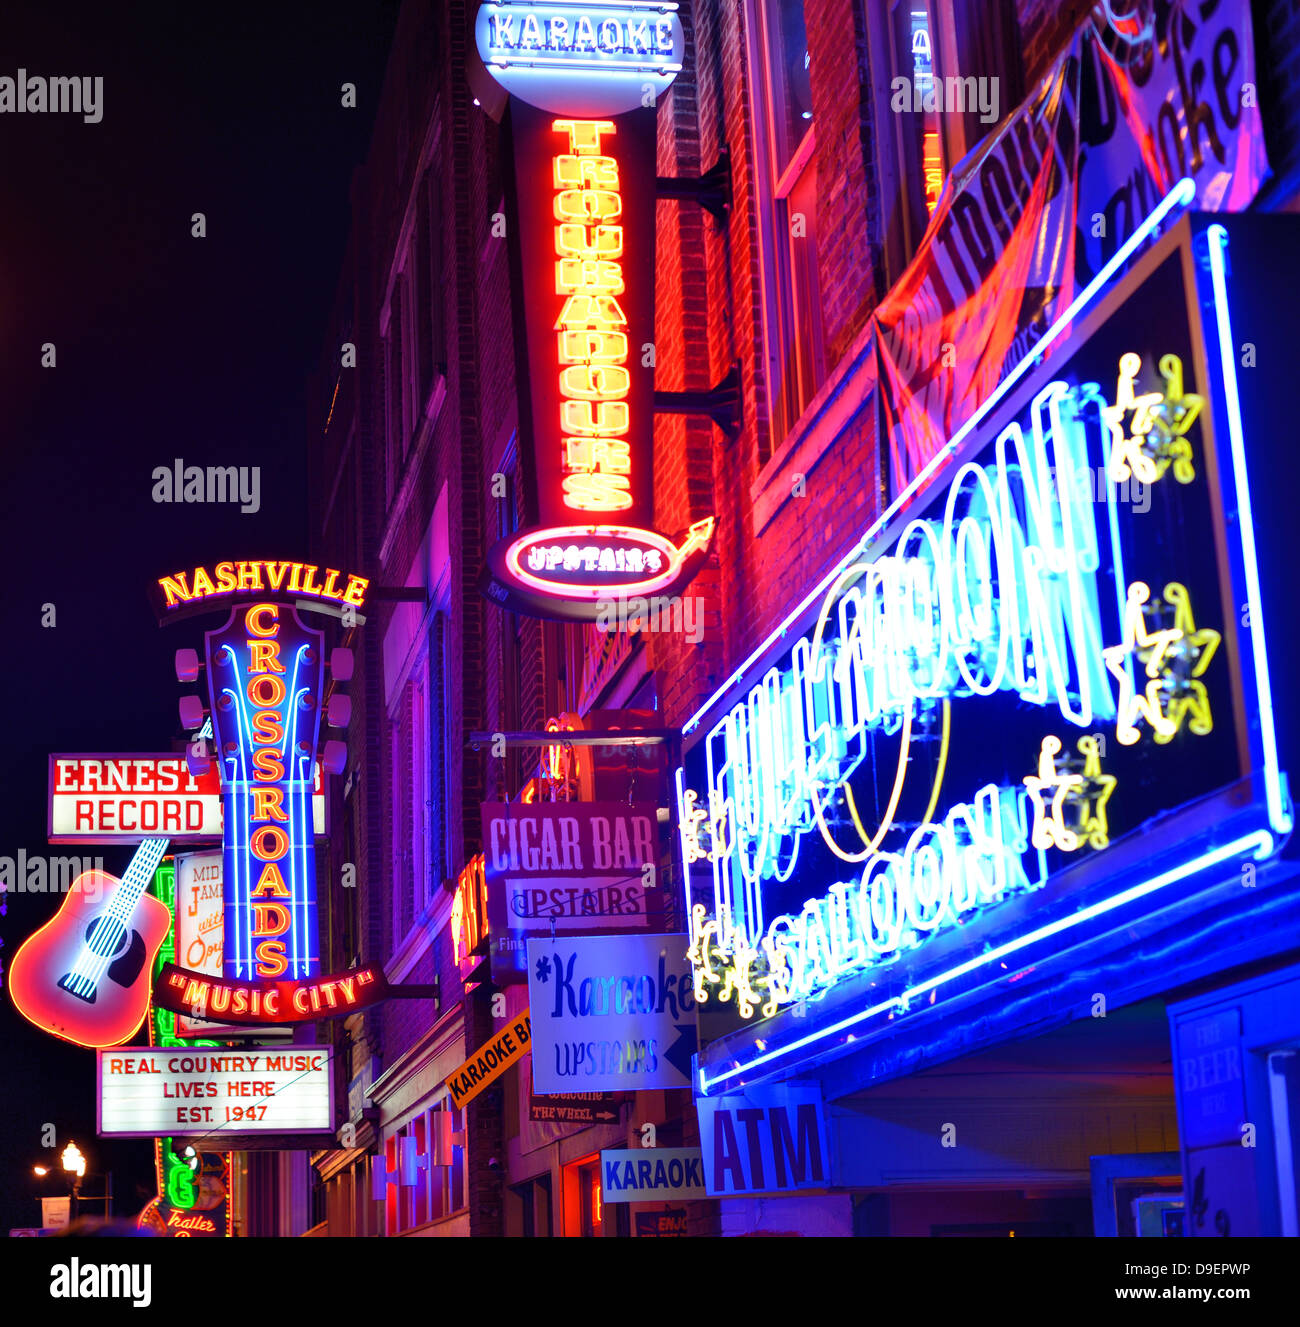 Neon signs of bars on Broadway in Nashville, Tennessee. - Stock Image